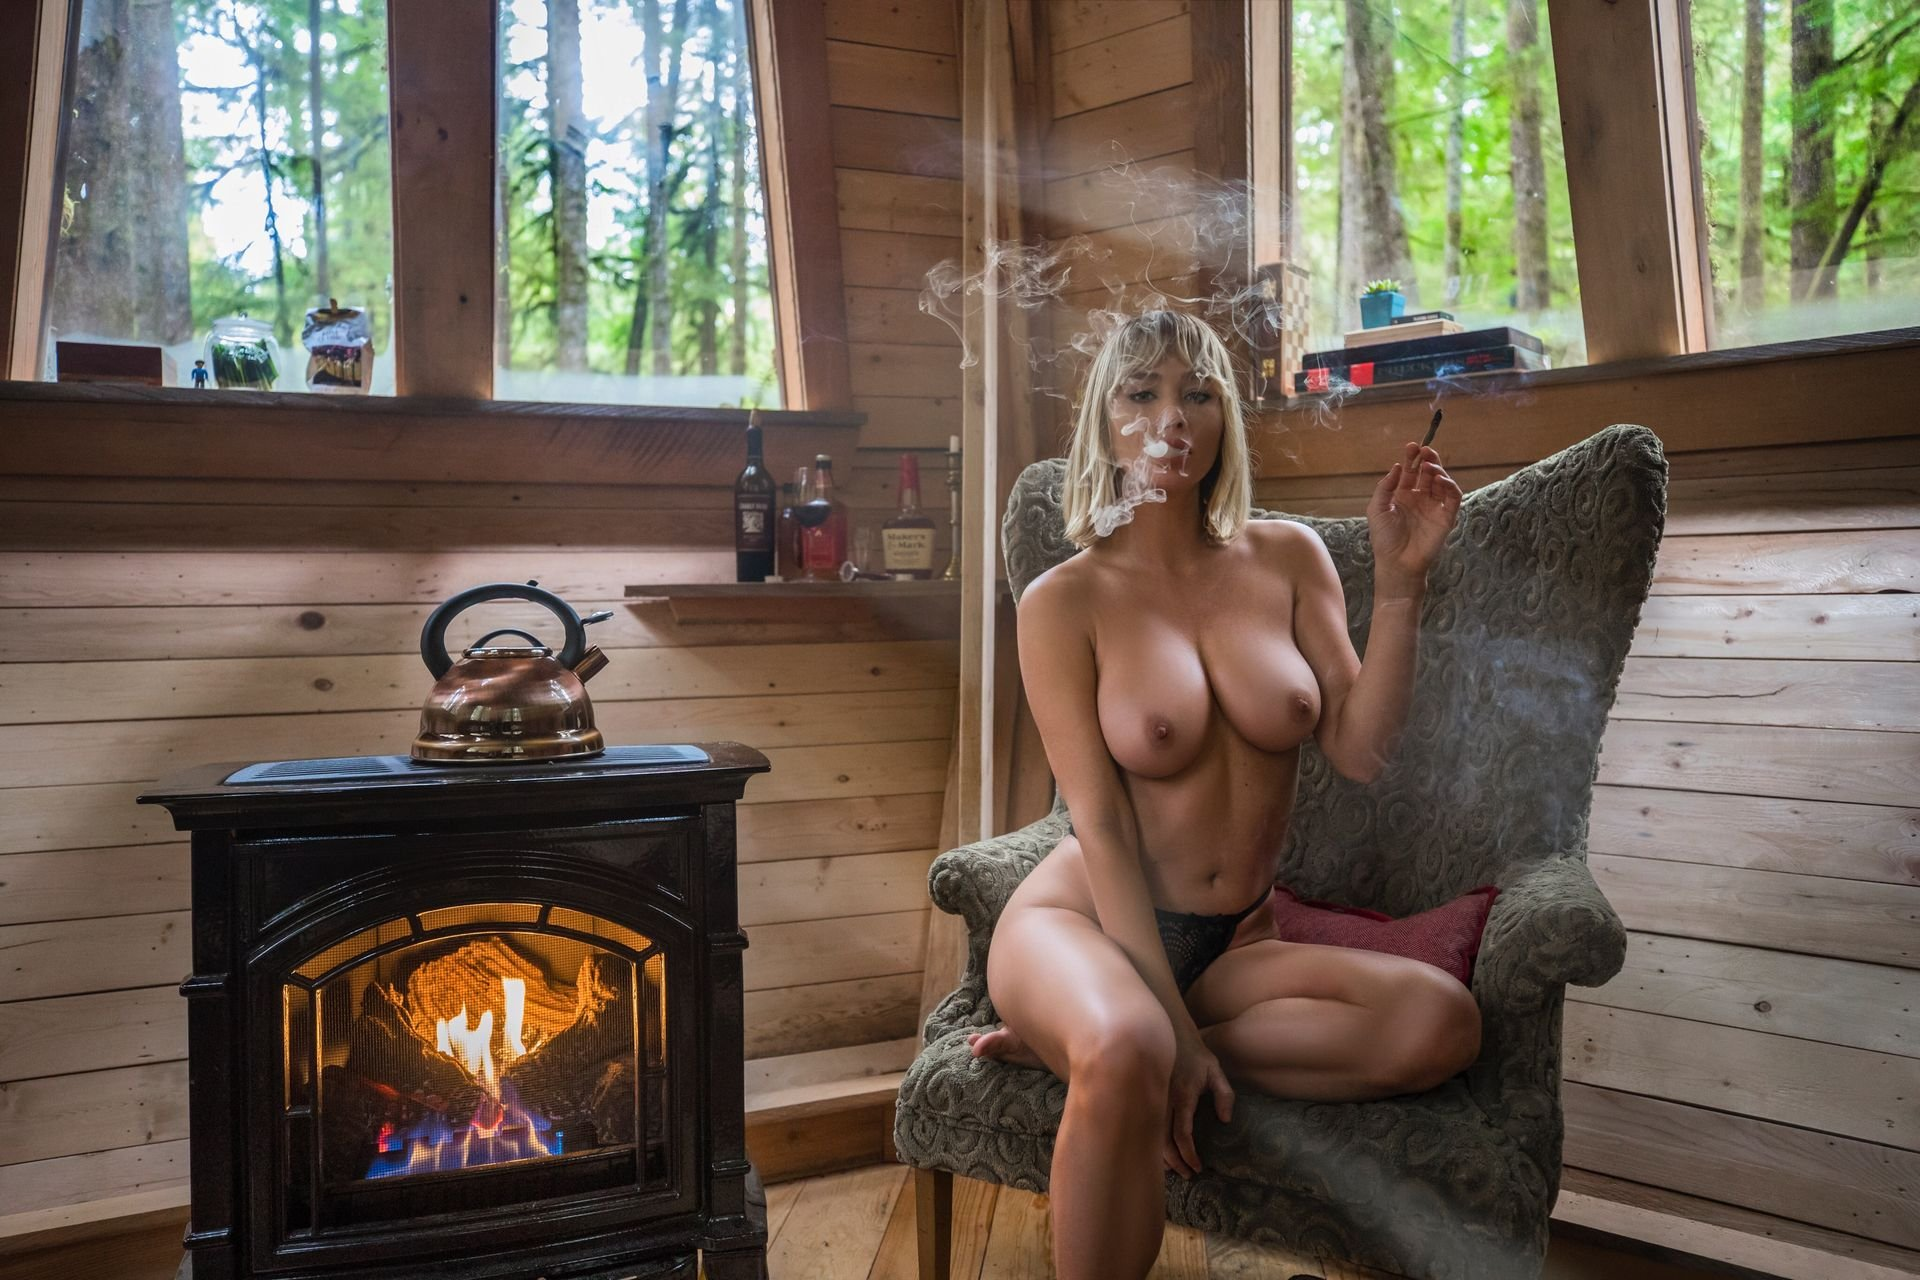 Sara Underwood Nude Photos And Videos Thefappening